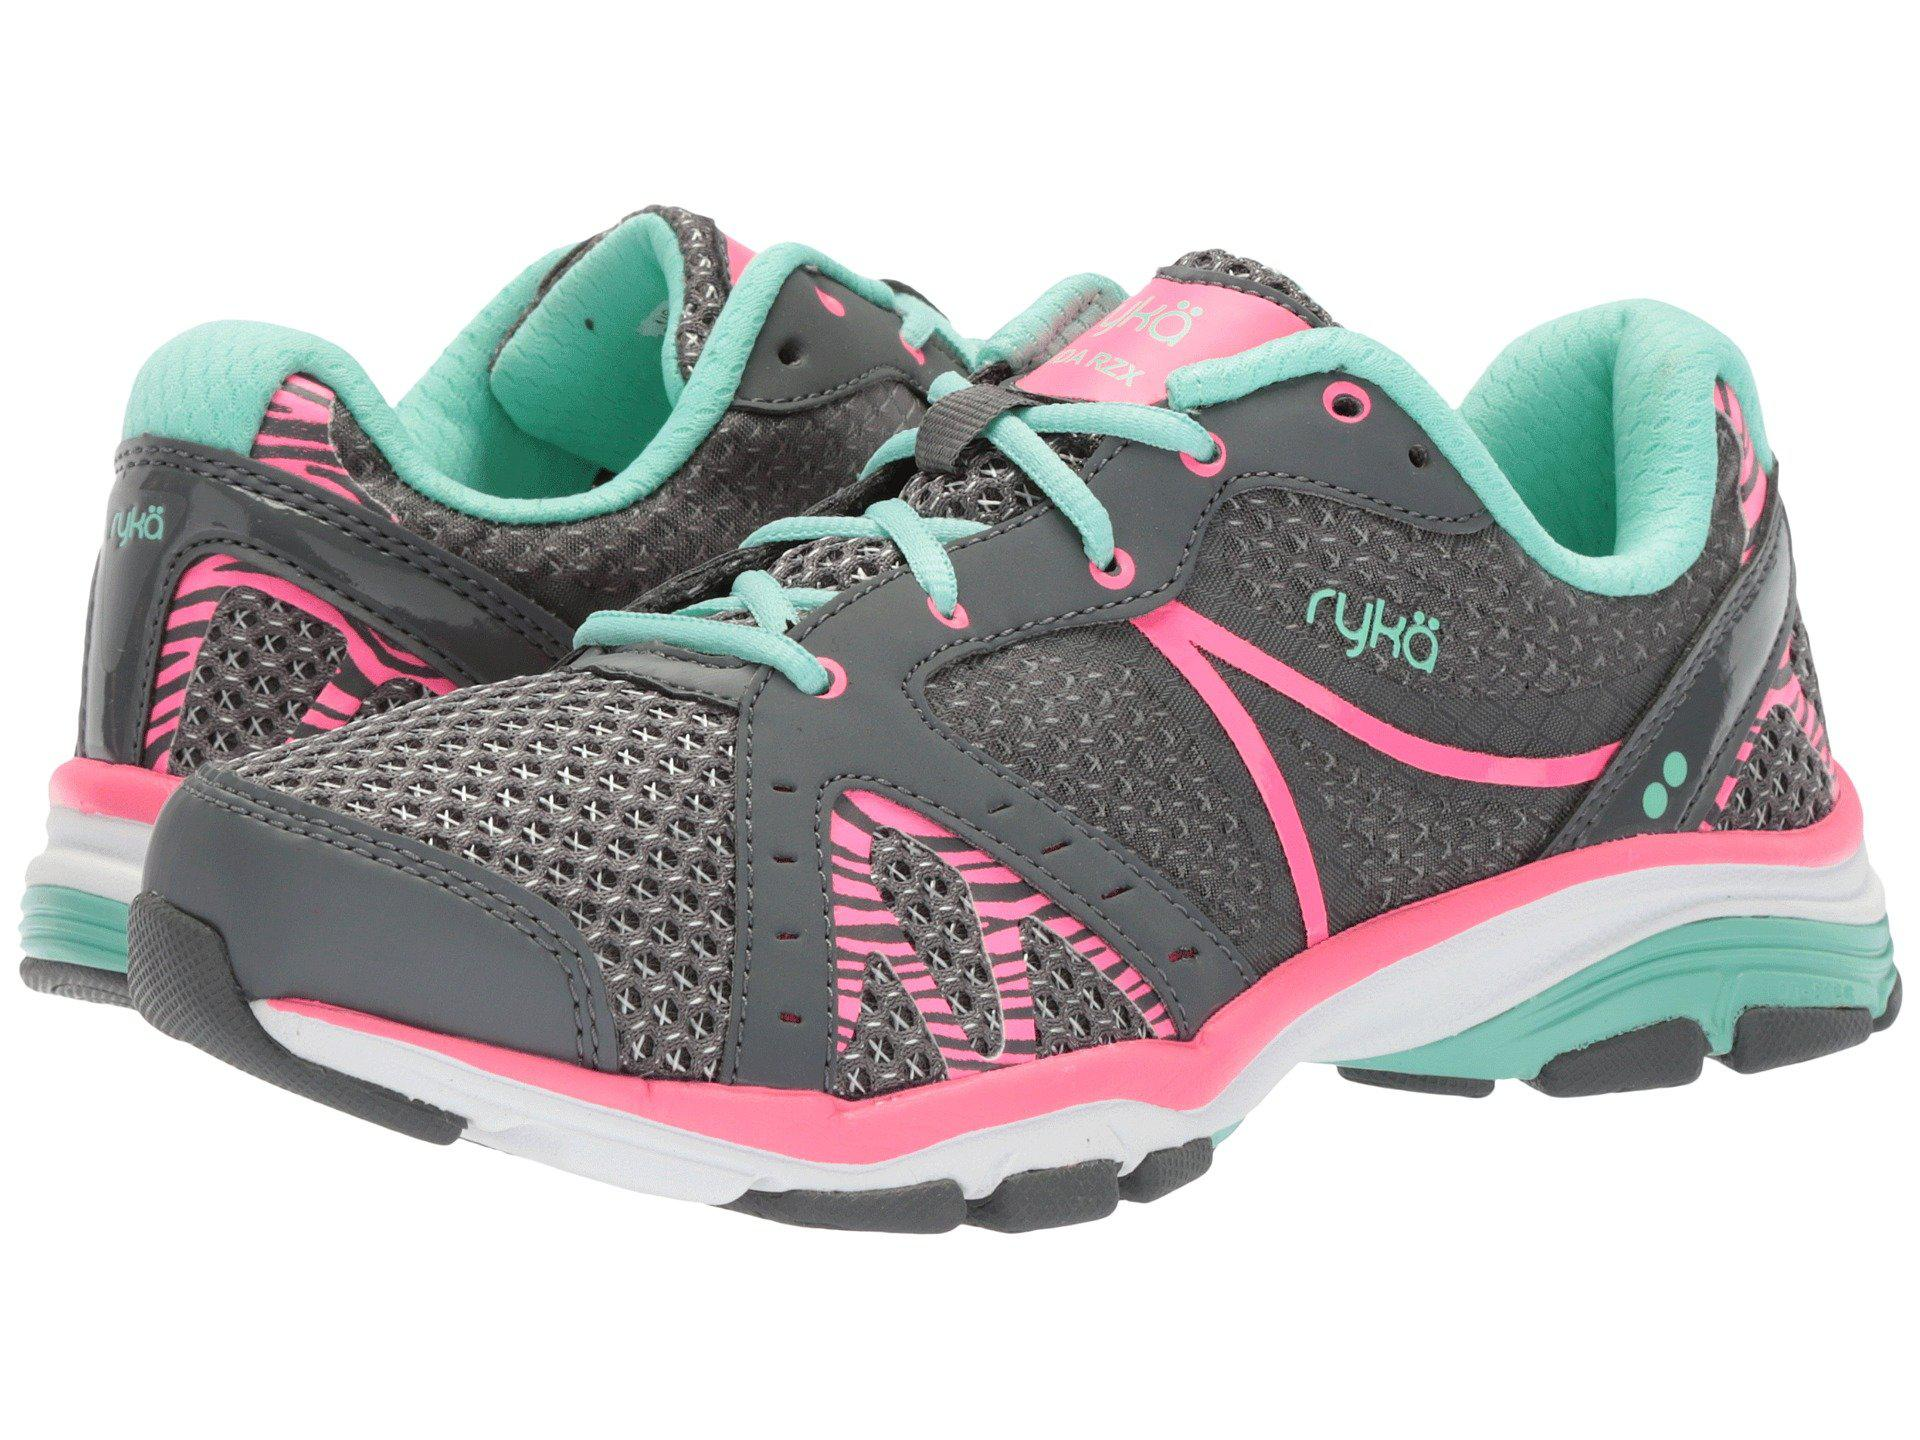 Ryka Vestige RZX Women's ... Cross-Training Shoes online cheap price cheap how much shipping discount sale amazon sale online ilhWT